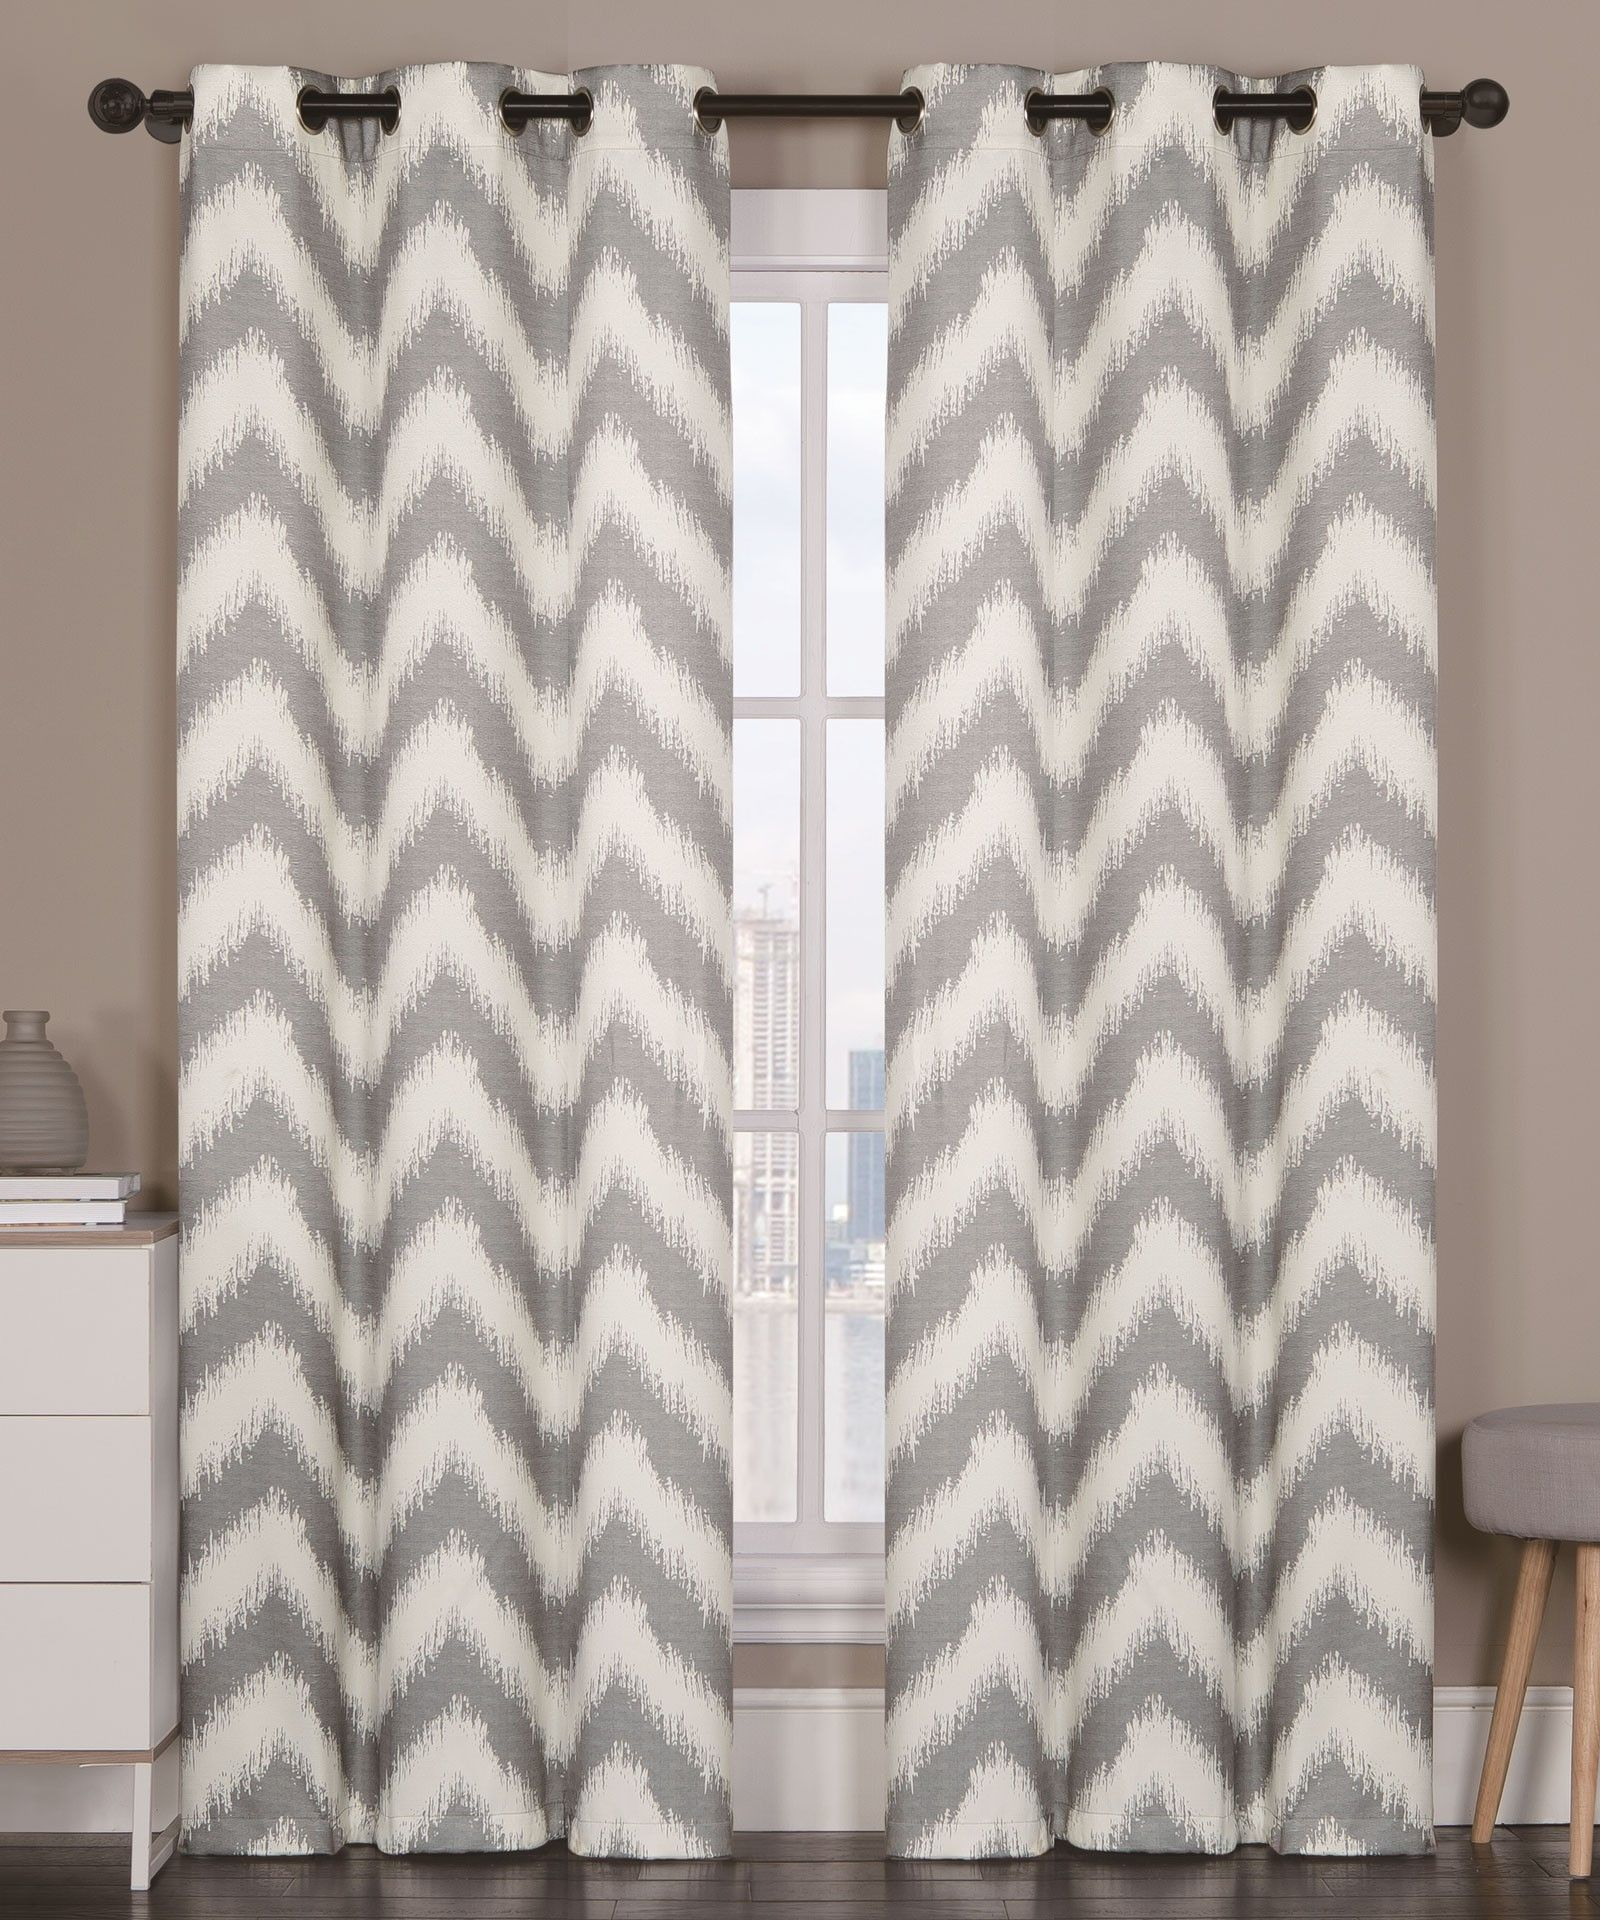 Vcny Athens Blackout Window Curtains Grommet Thermal 2 Panel Set